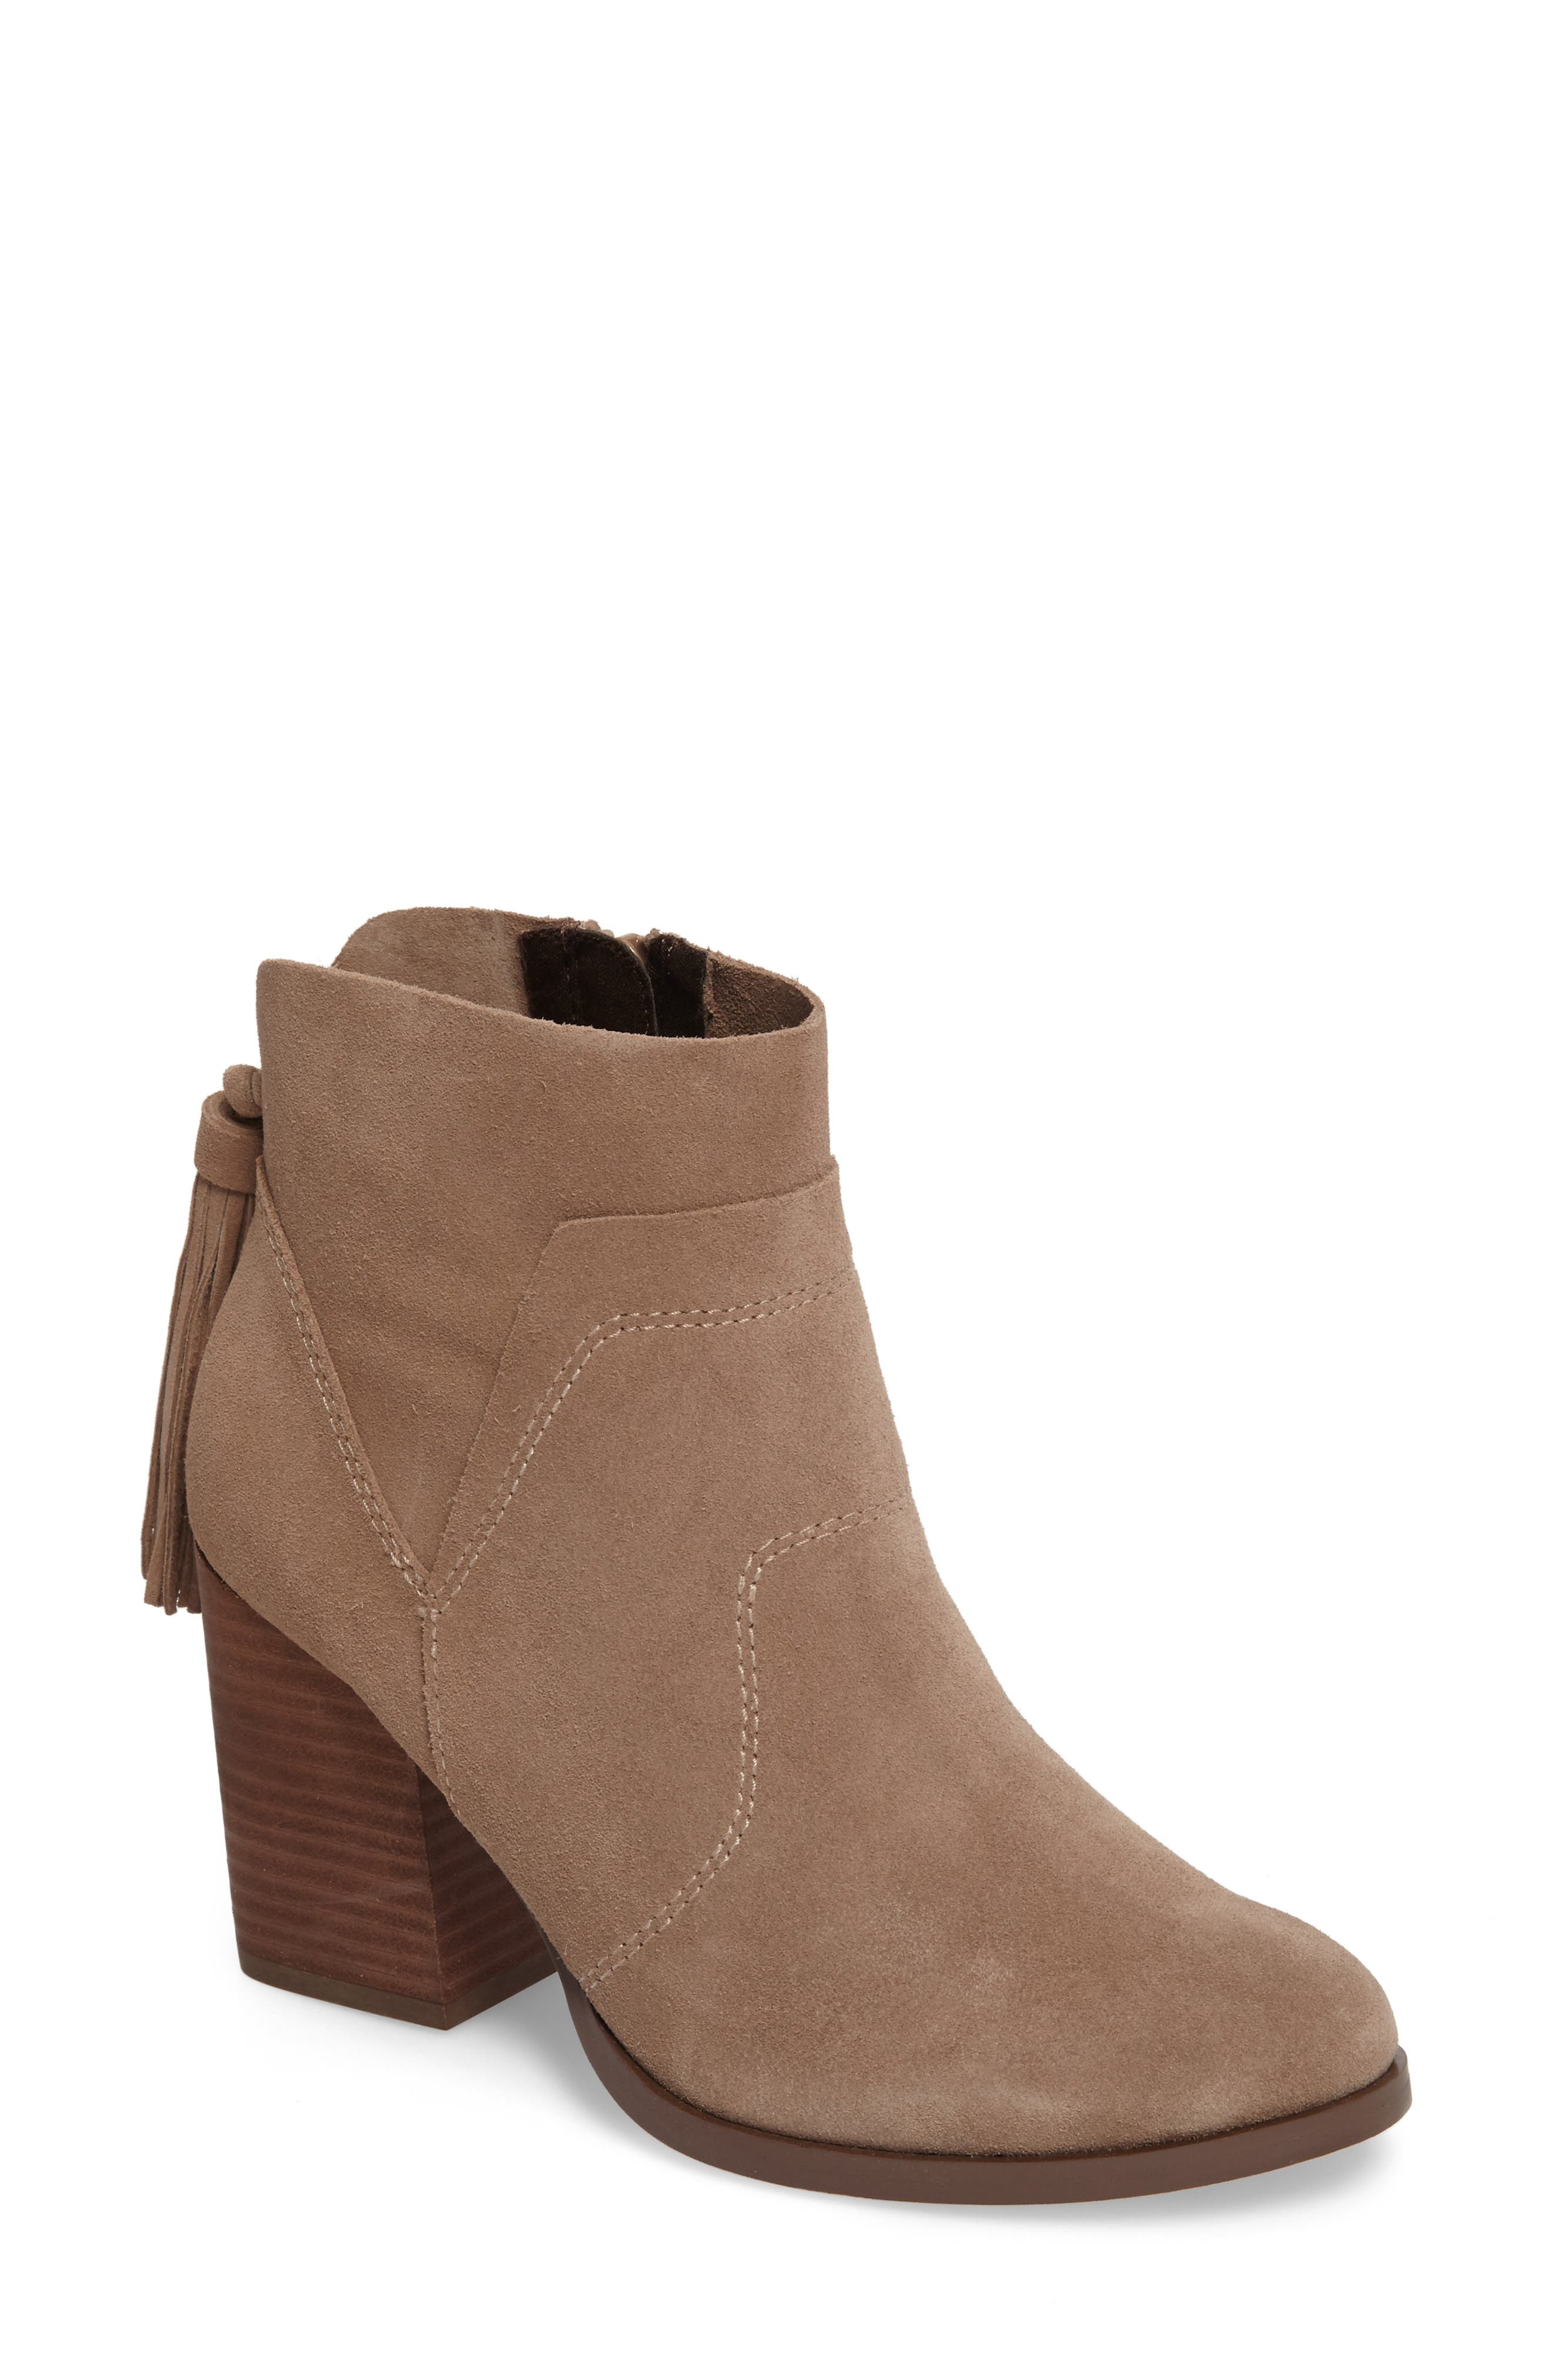 Ambrose Bootie,                         Main,                         color, Taupe